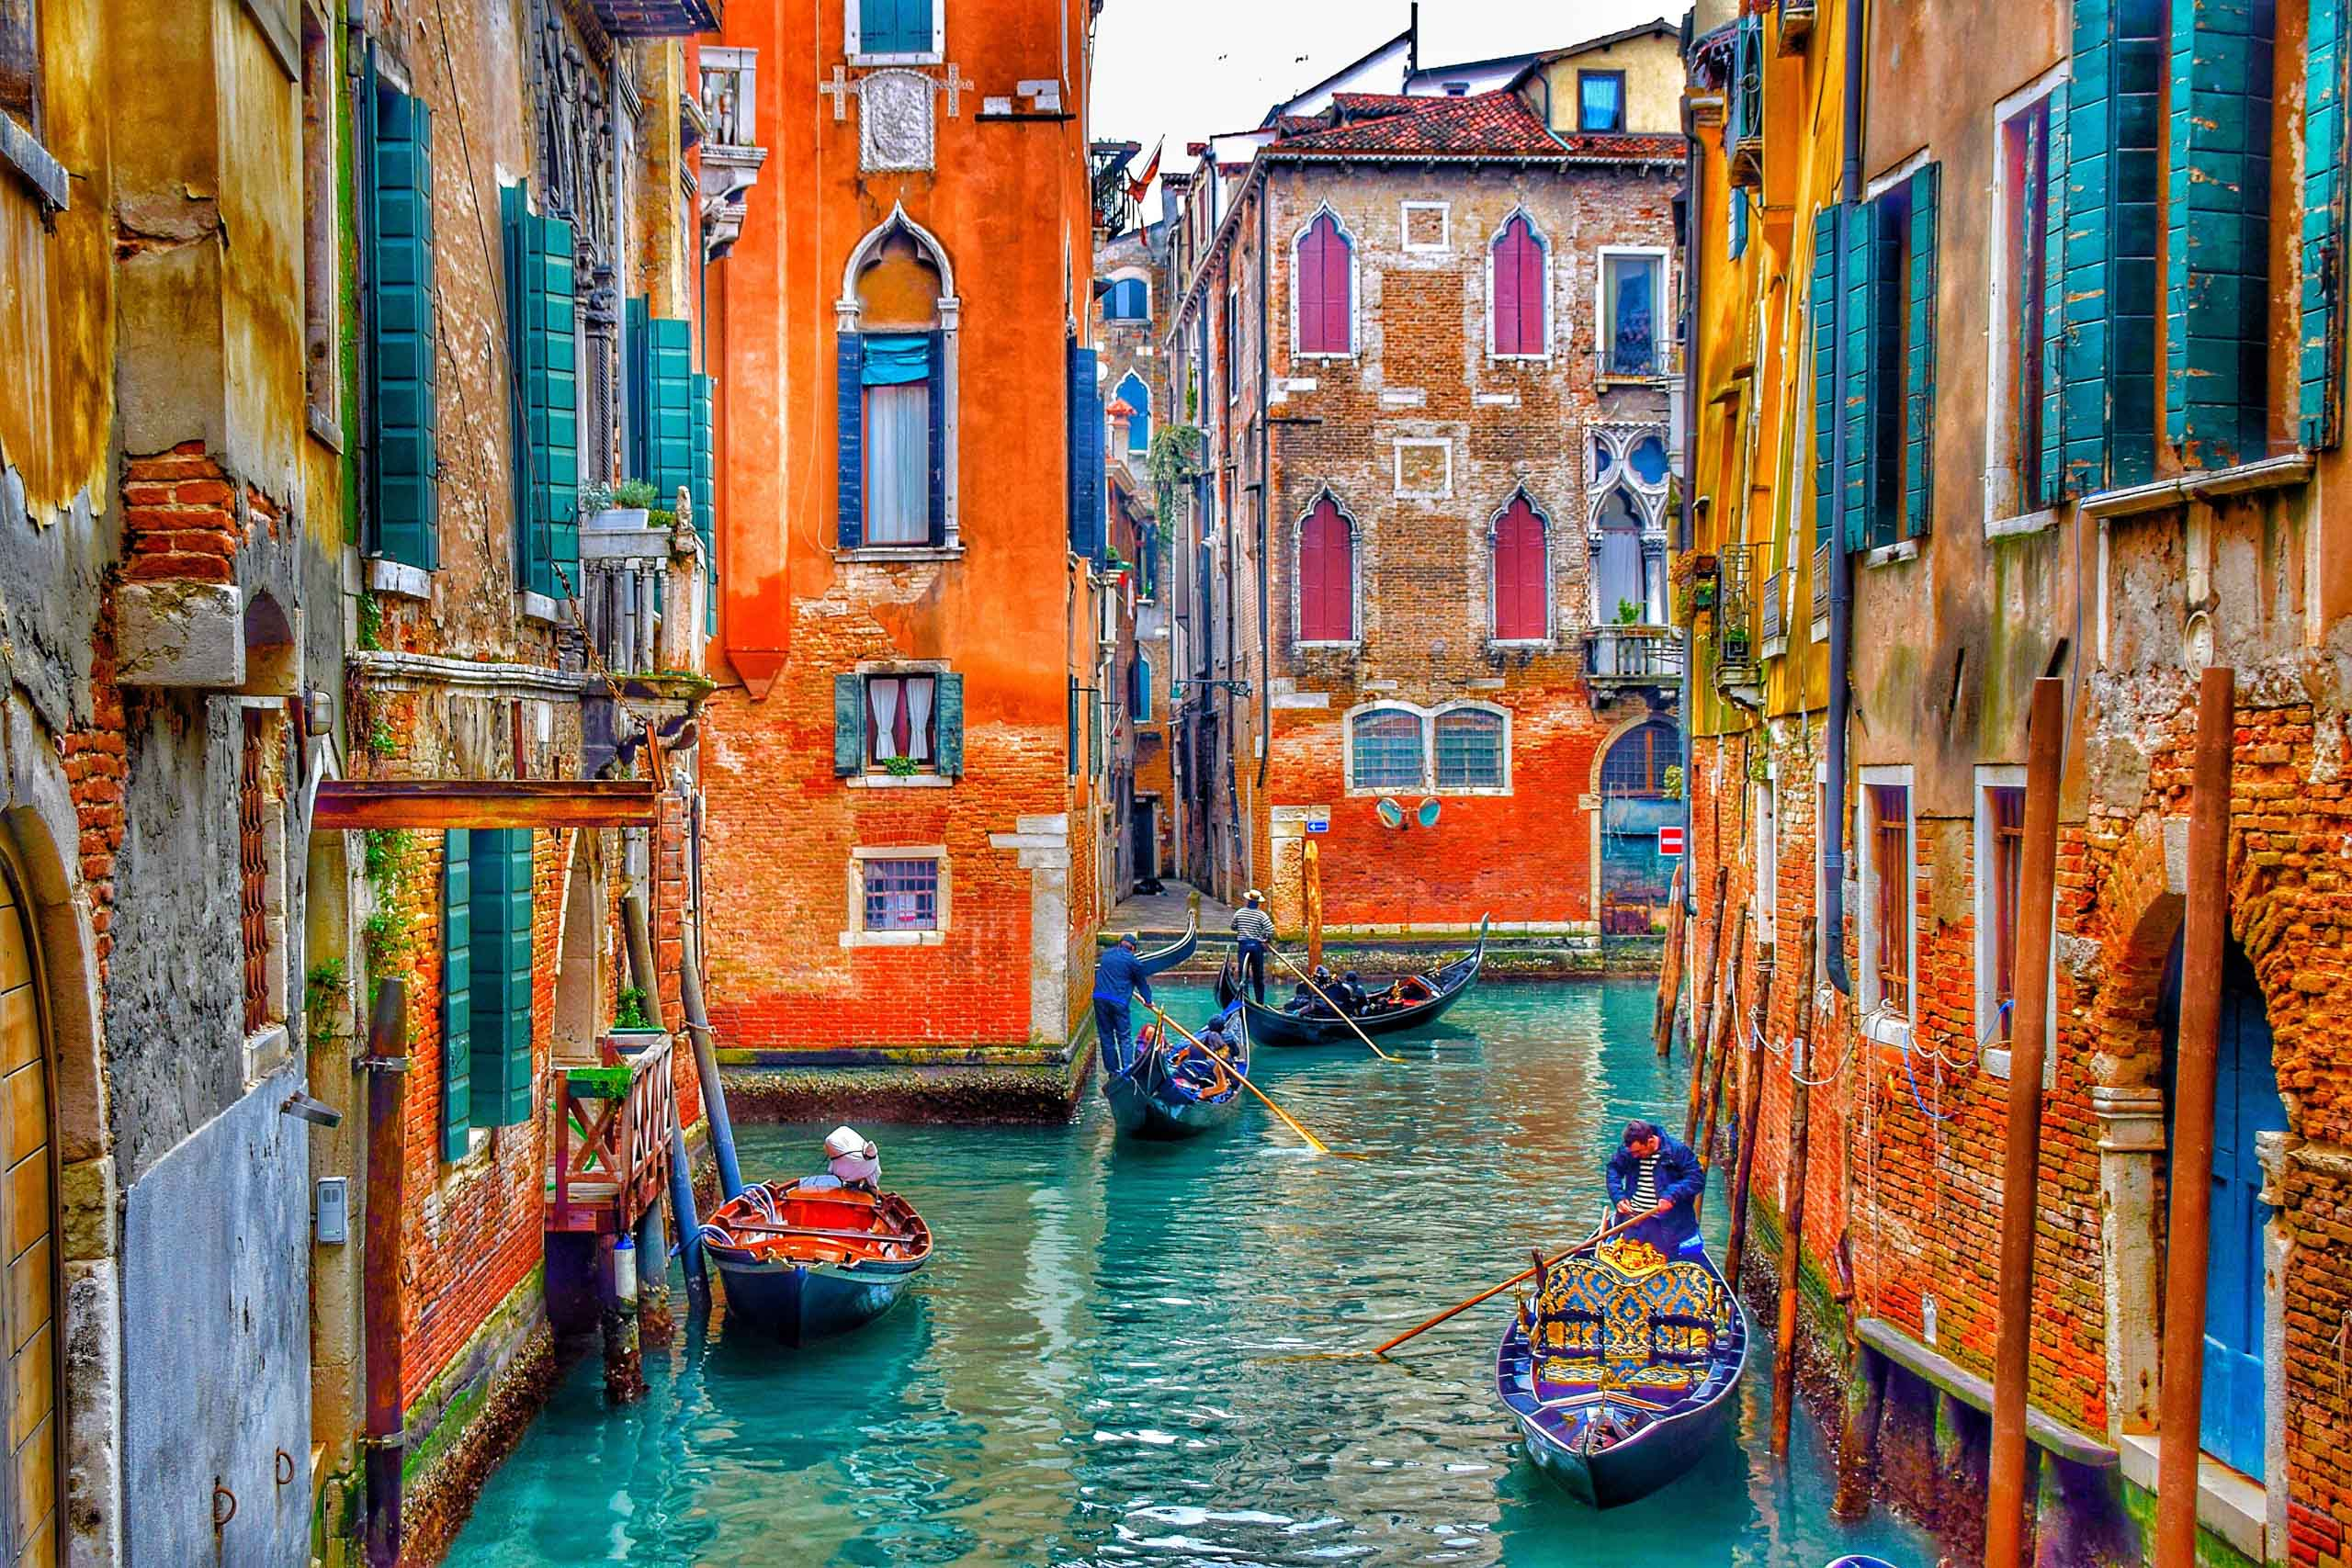 Colourful buildings and canal in Venice